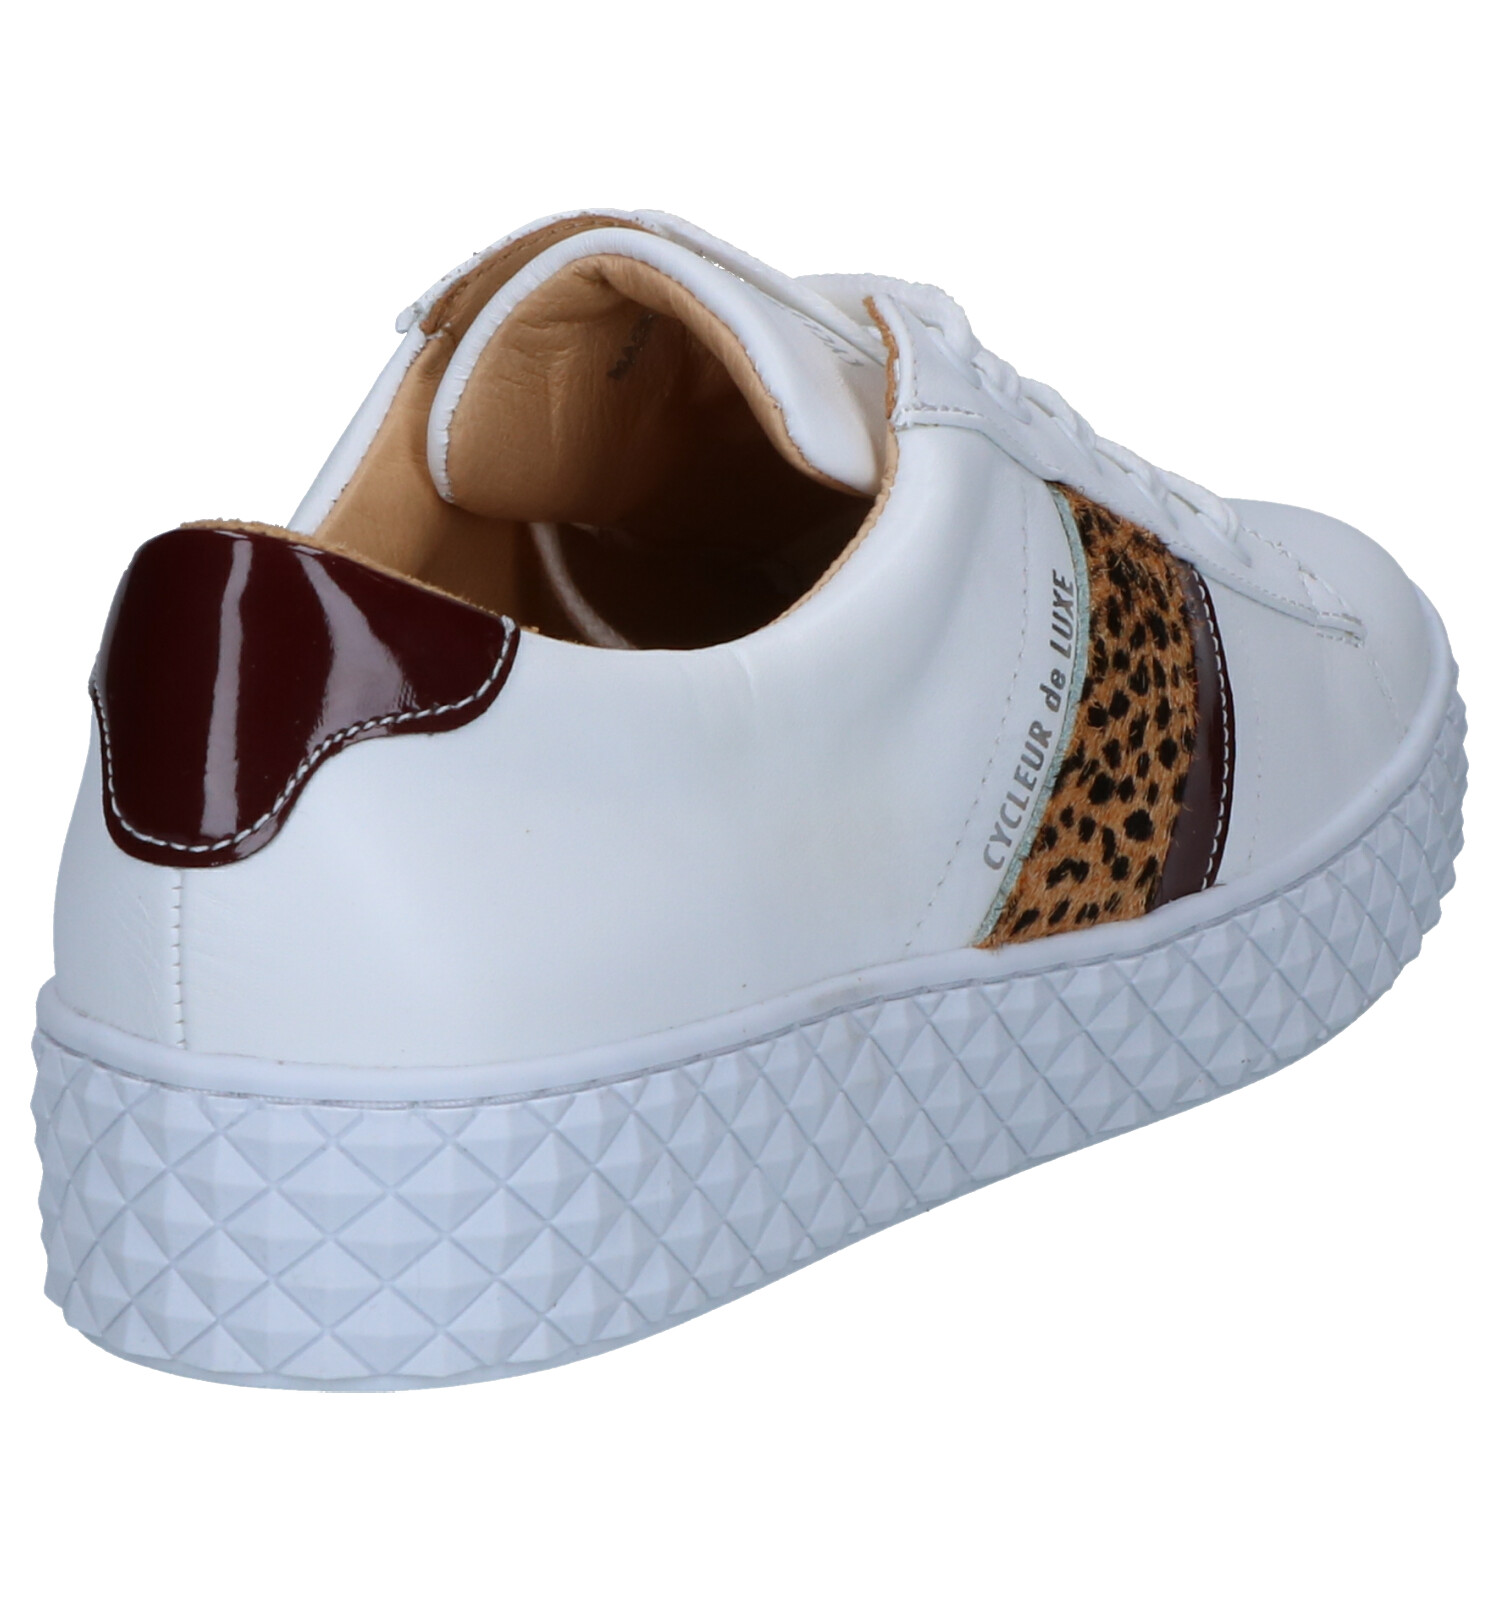 Witte Luxe Pica Sneakers Cycleur De mN8nO0vw